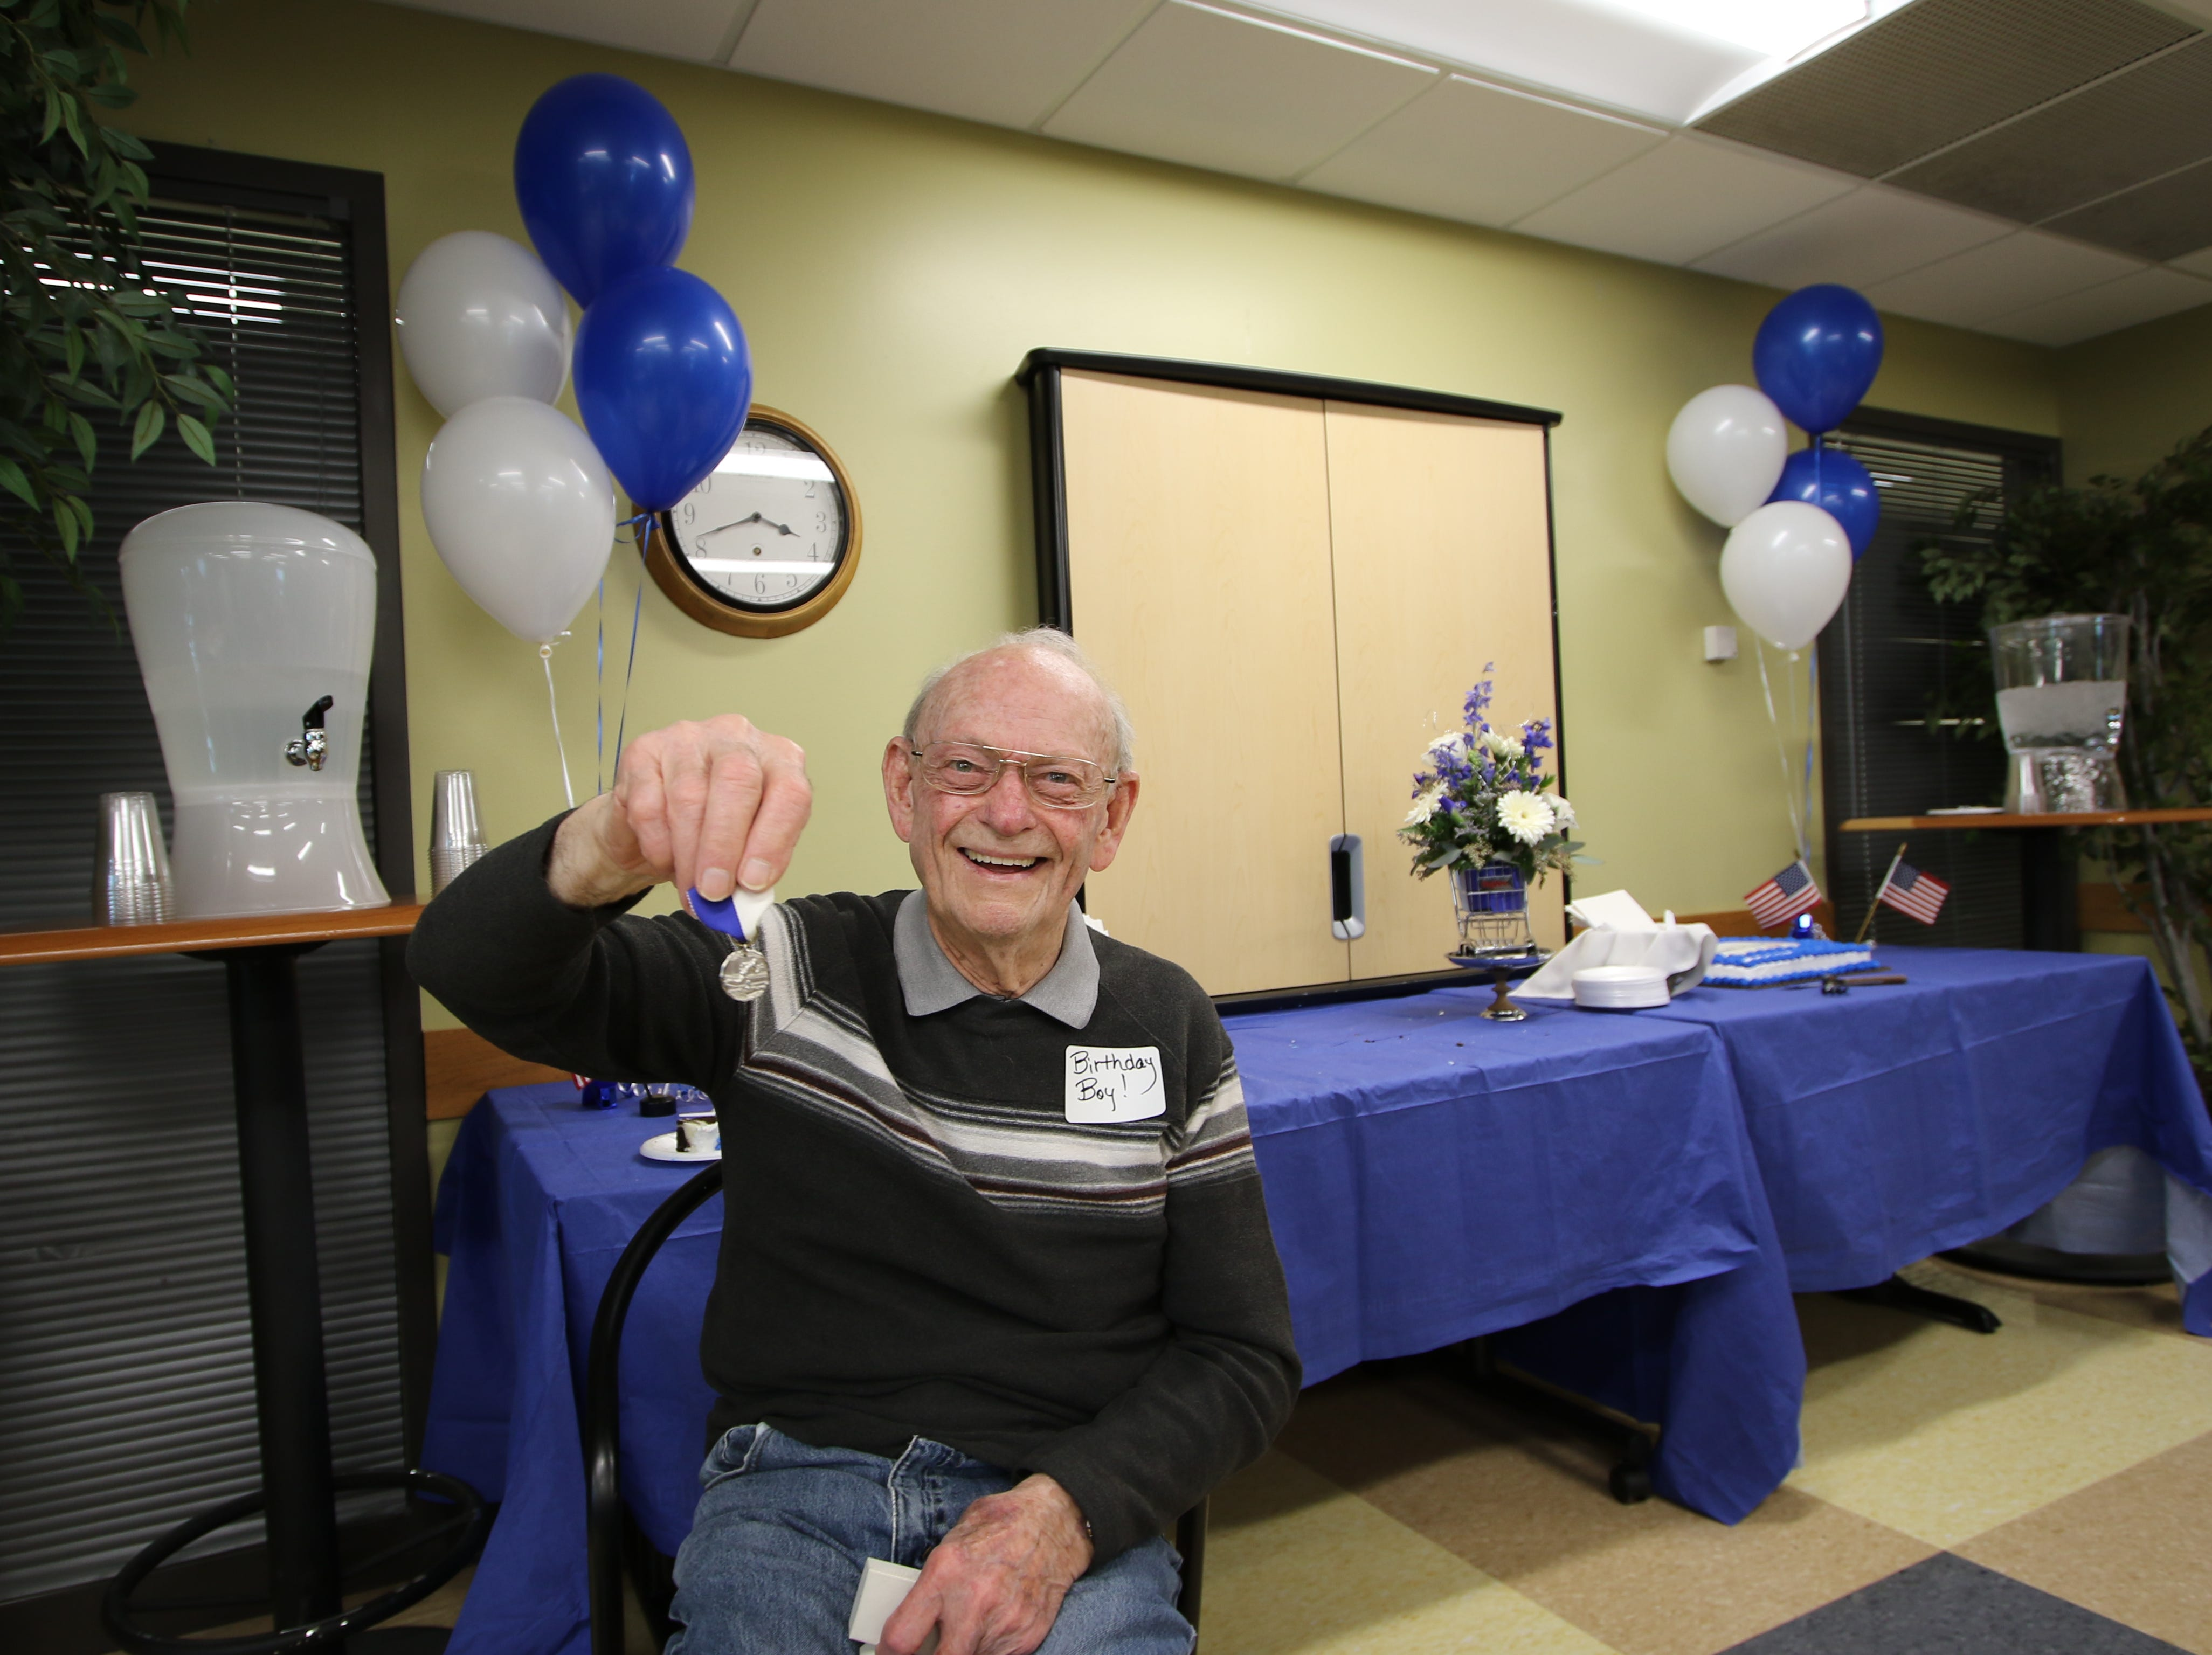 After 75 years, this 93-year-old WWII veteran finally got to hold his 1944 Drake Relays medal